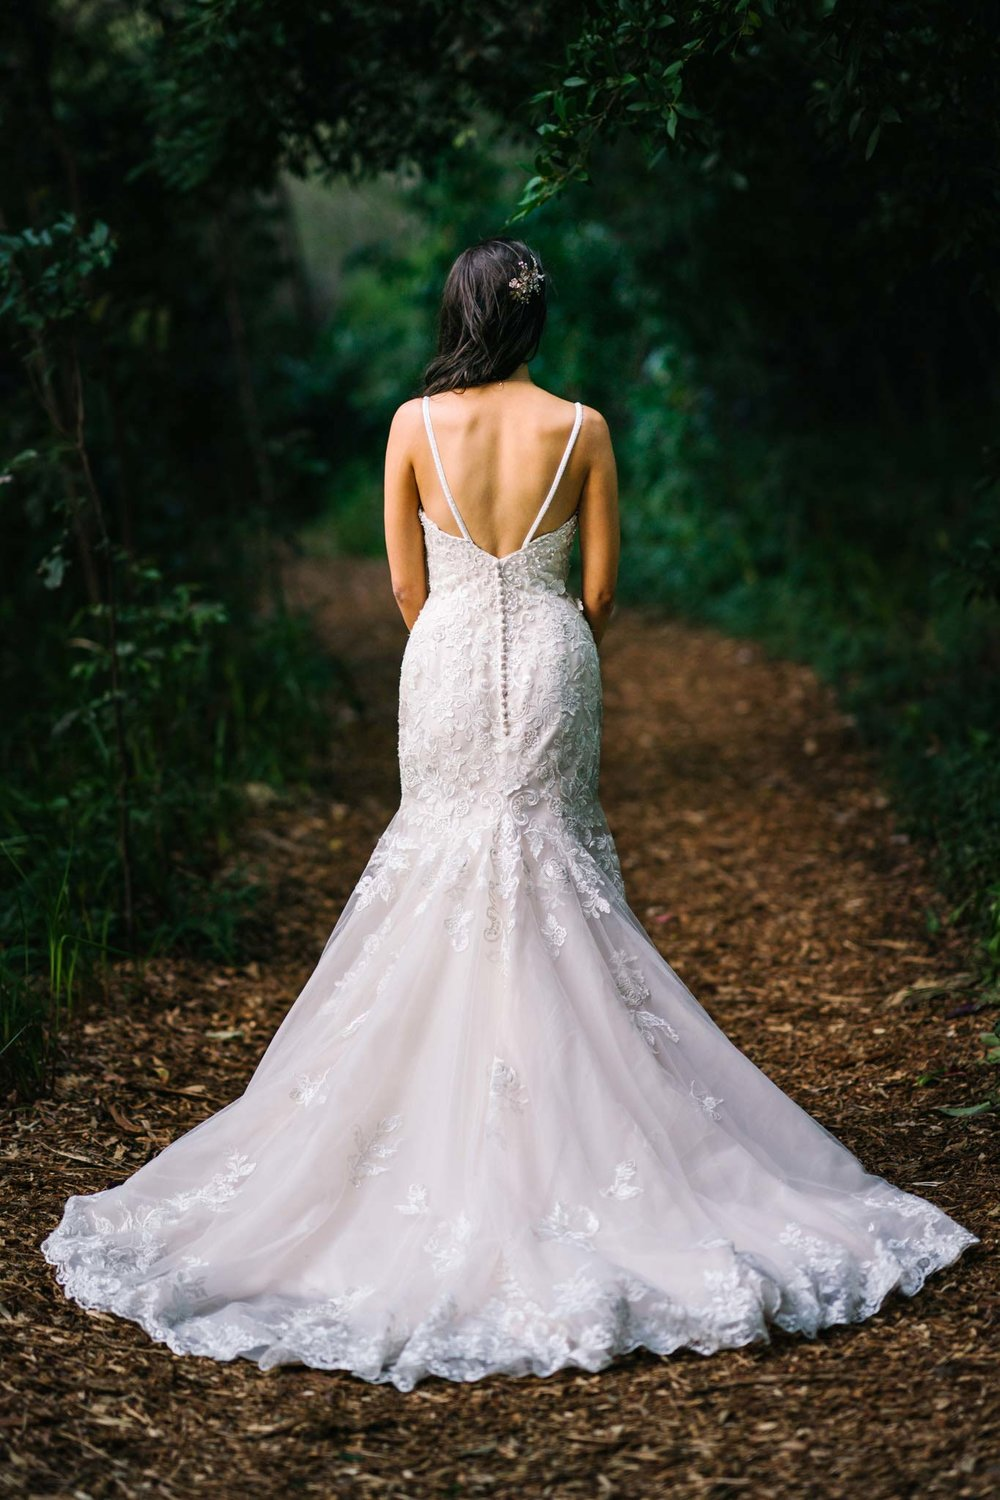 View of back of bride's dress